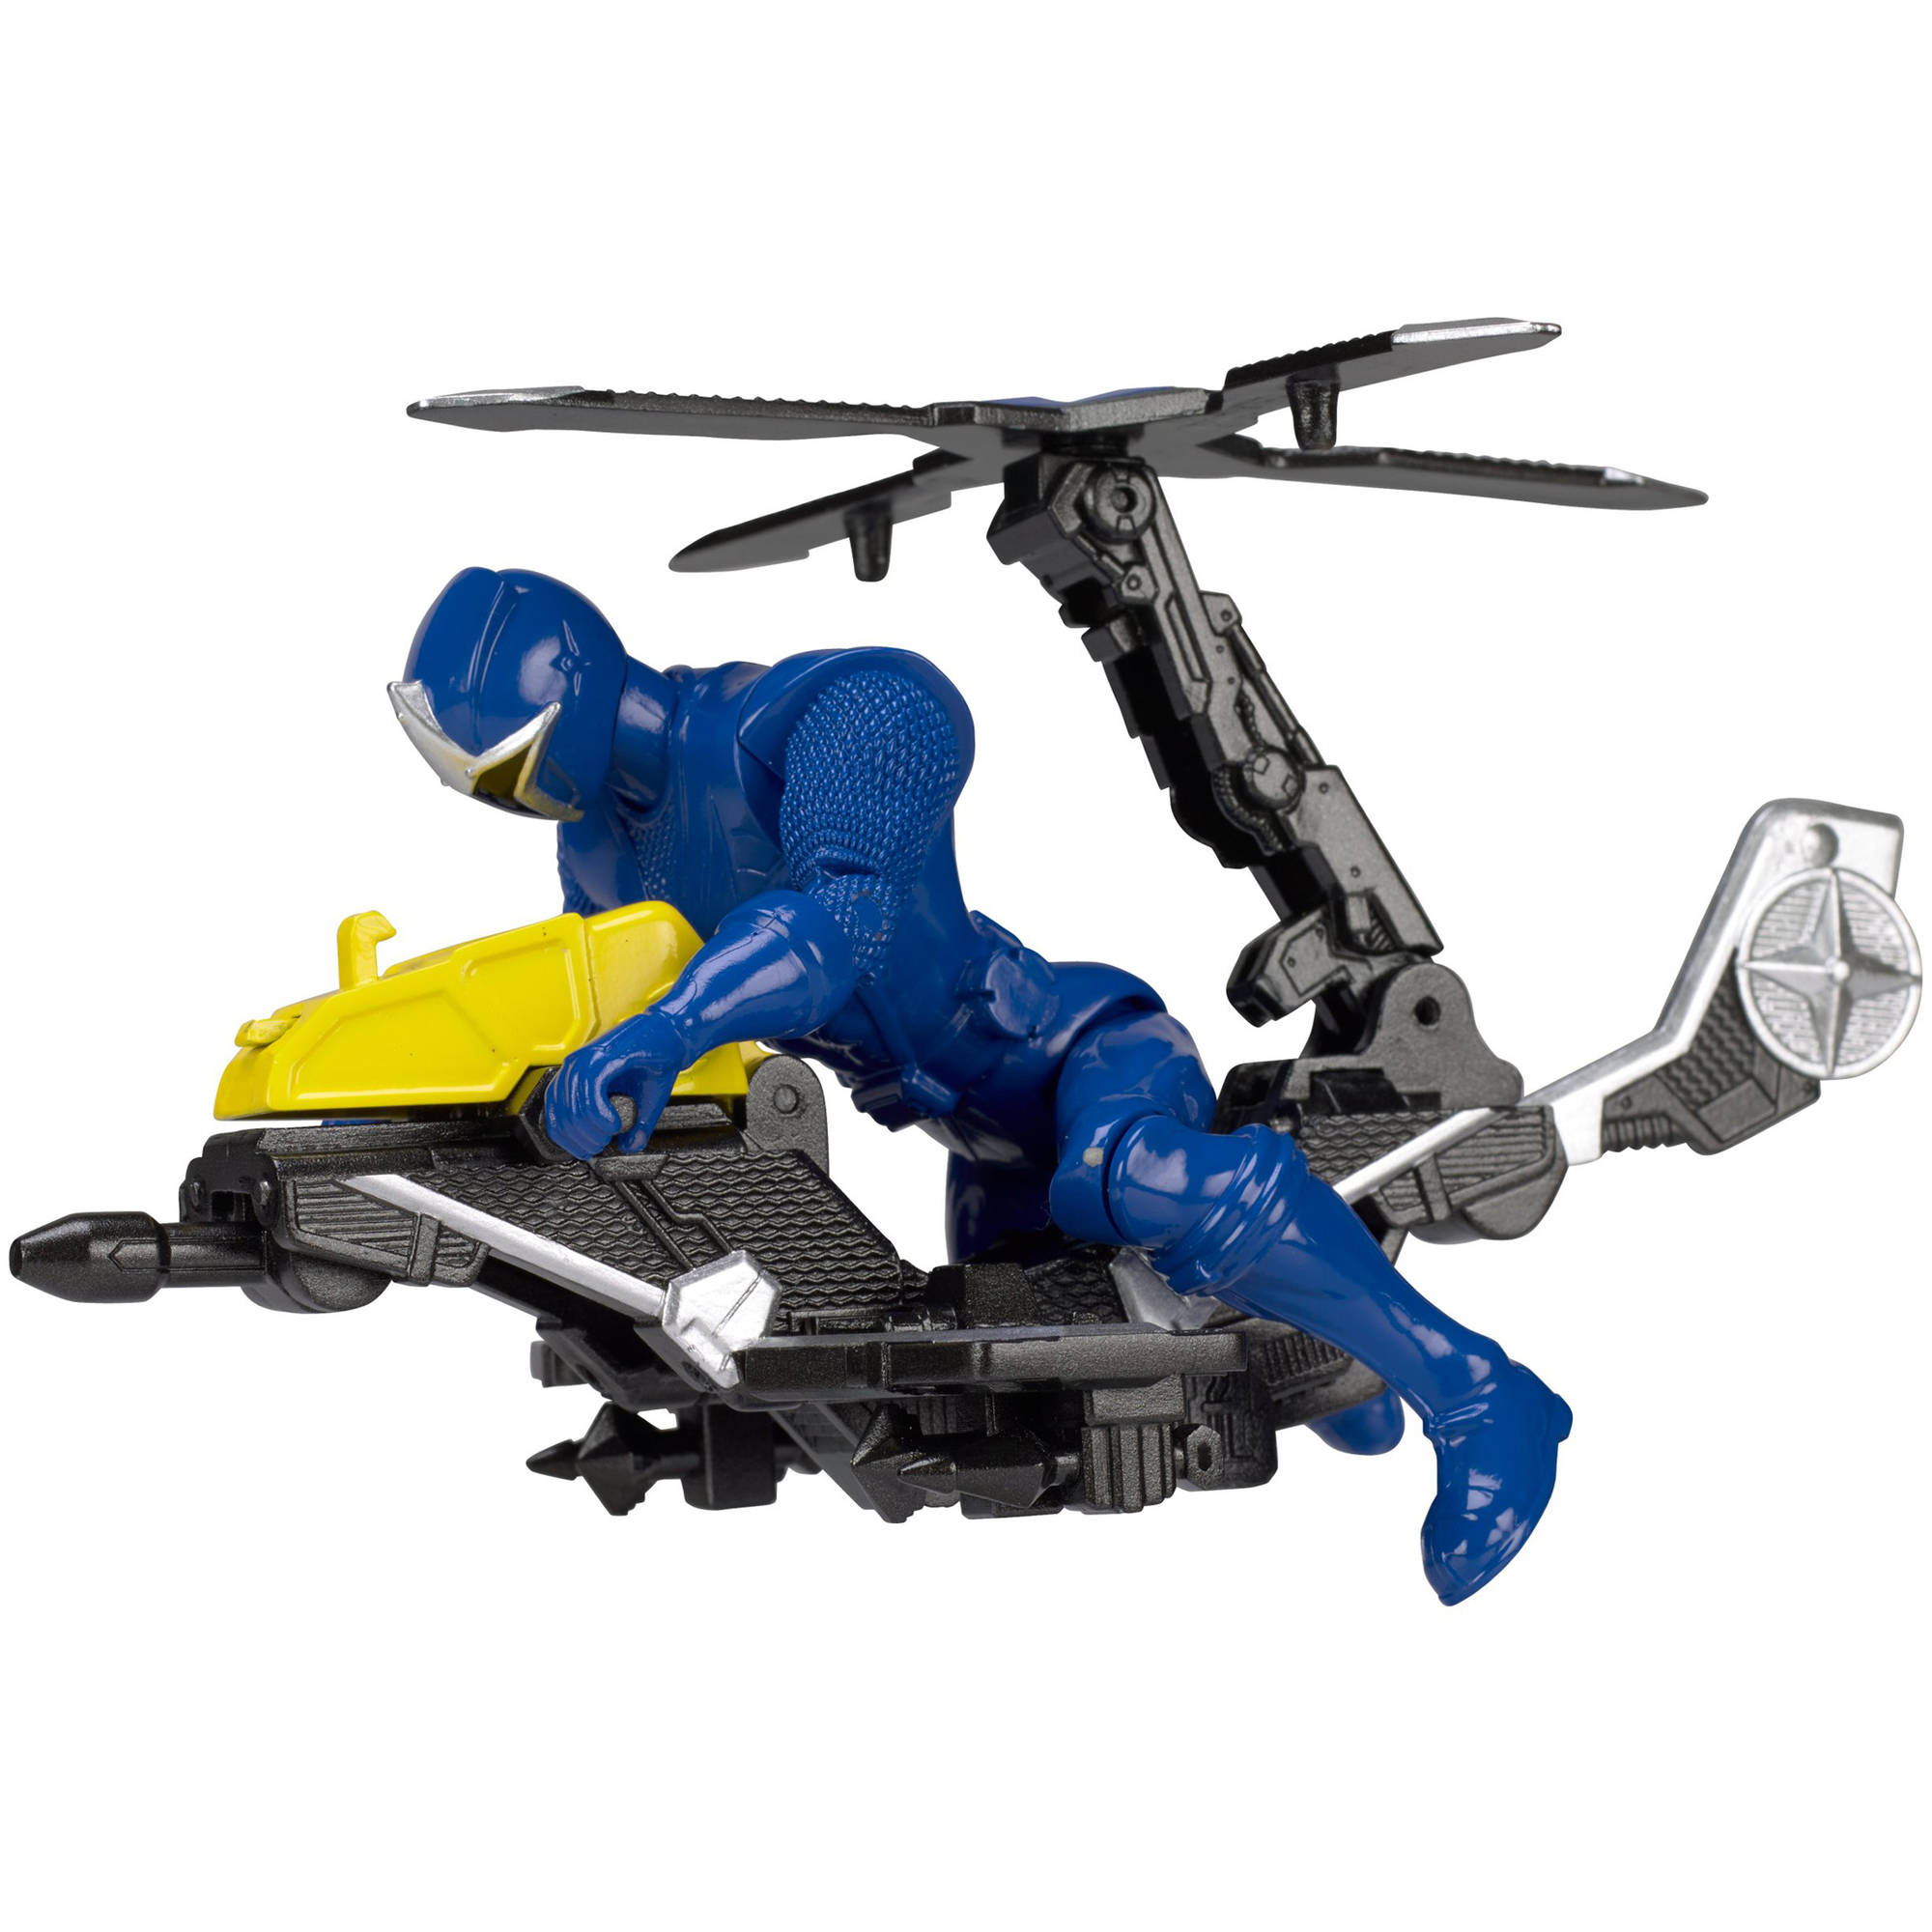 Power Rangers Ninja Steel Power Rangers Mega Morph Copter with Blue Ranger by Bandai America, Inc